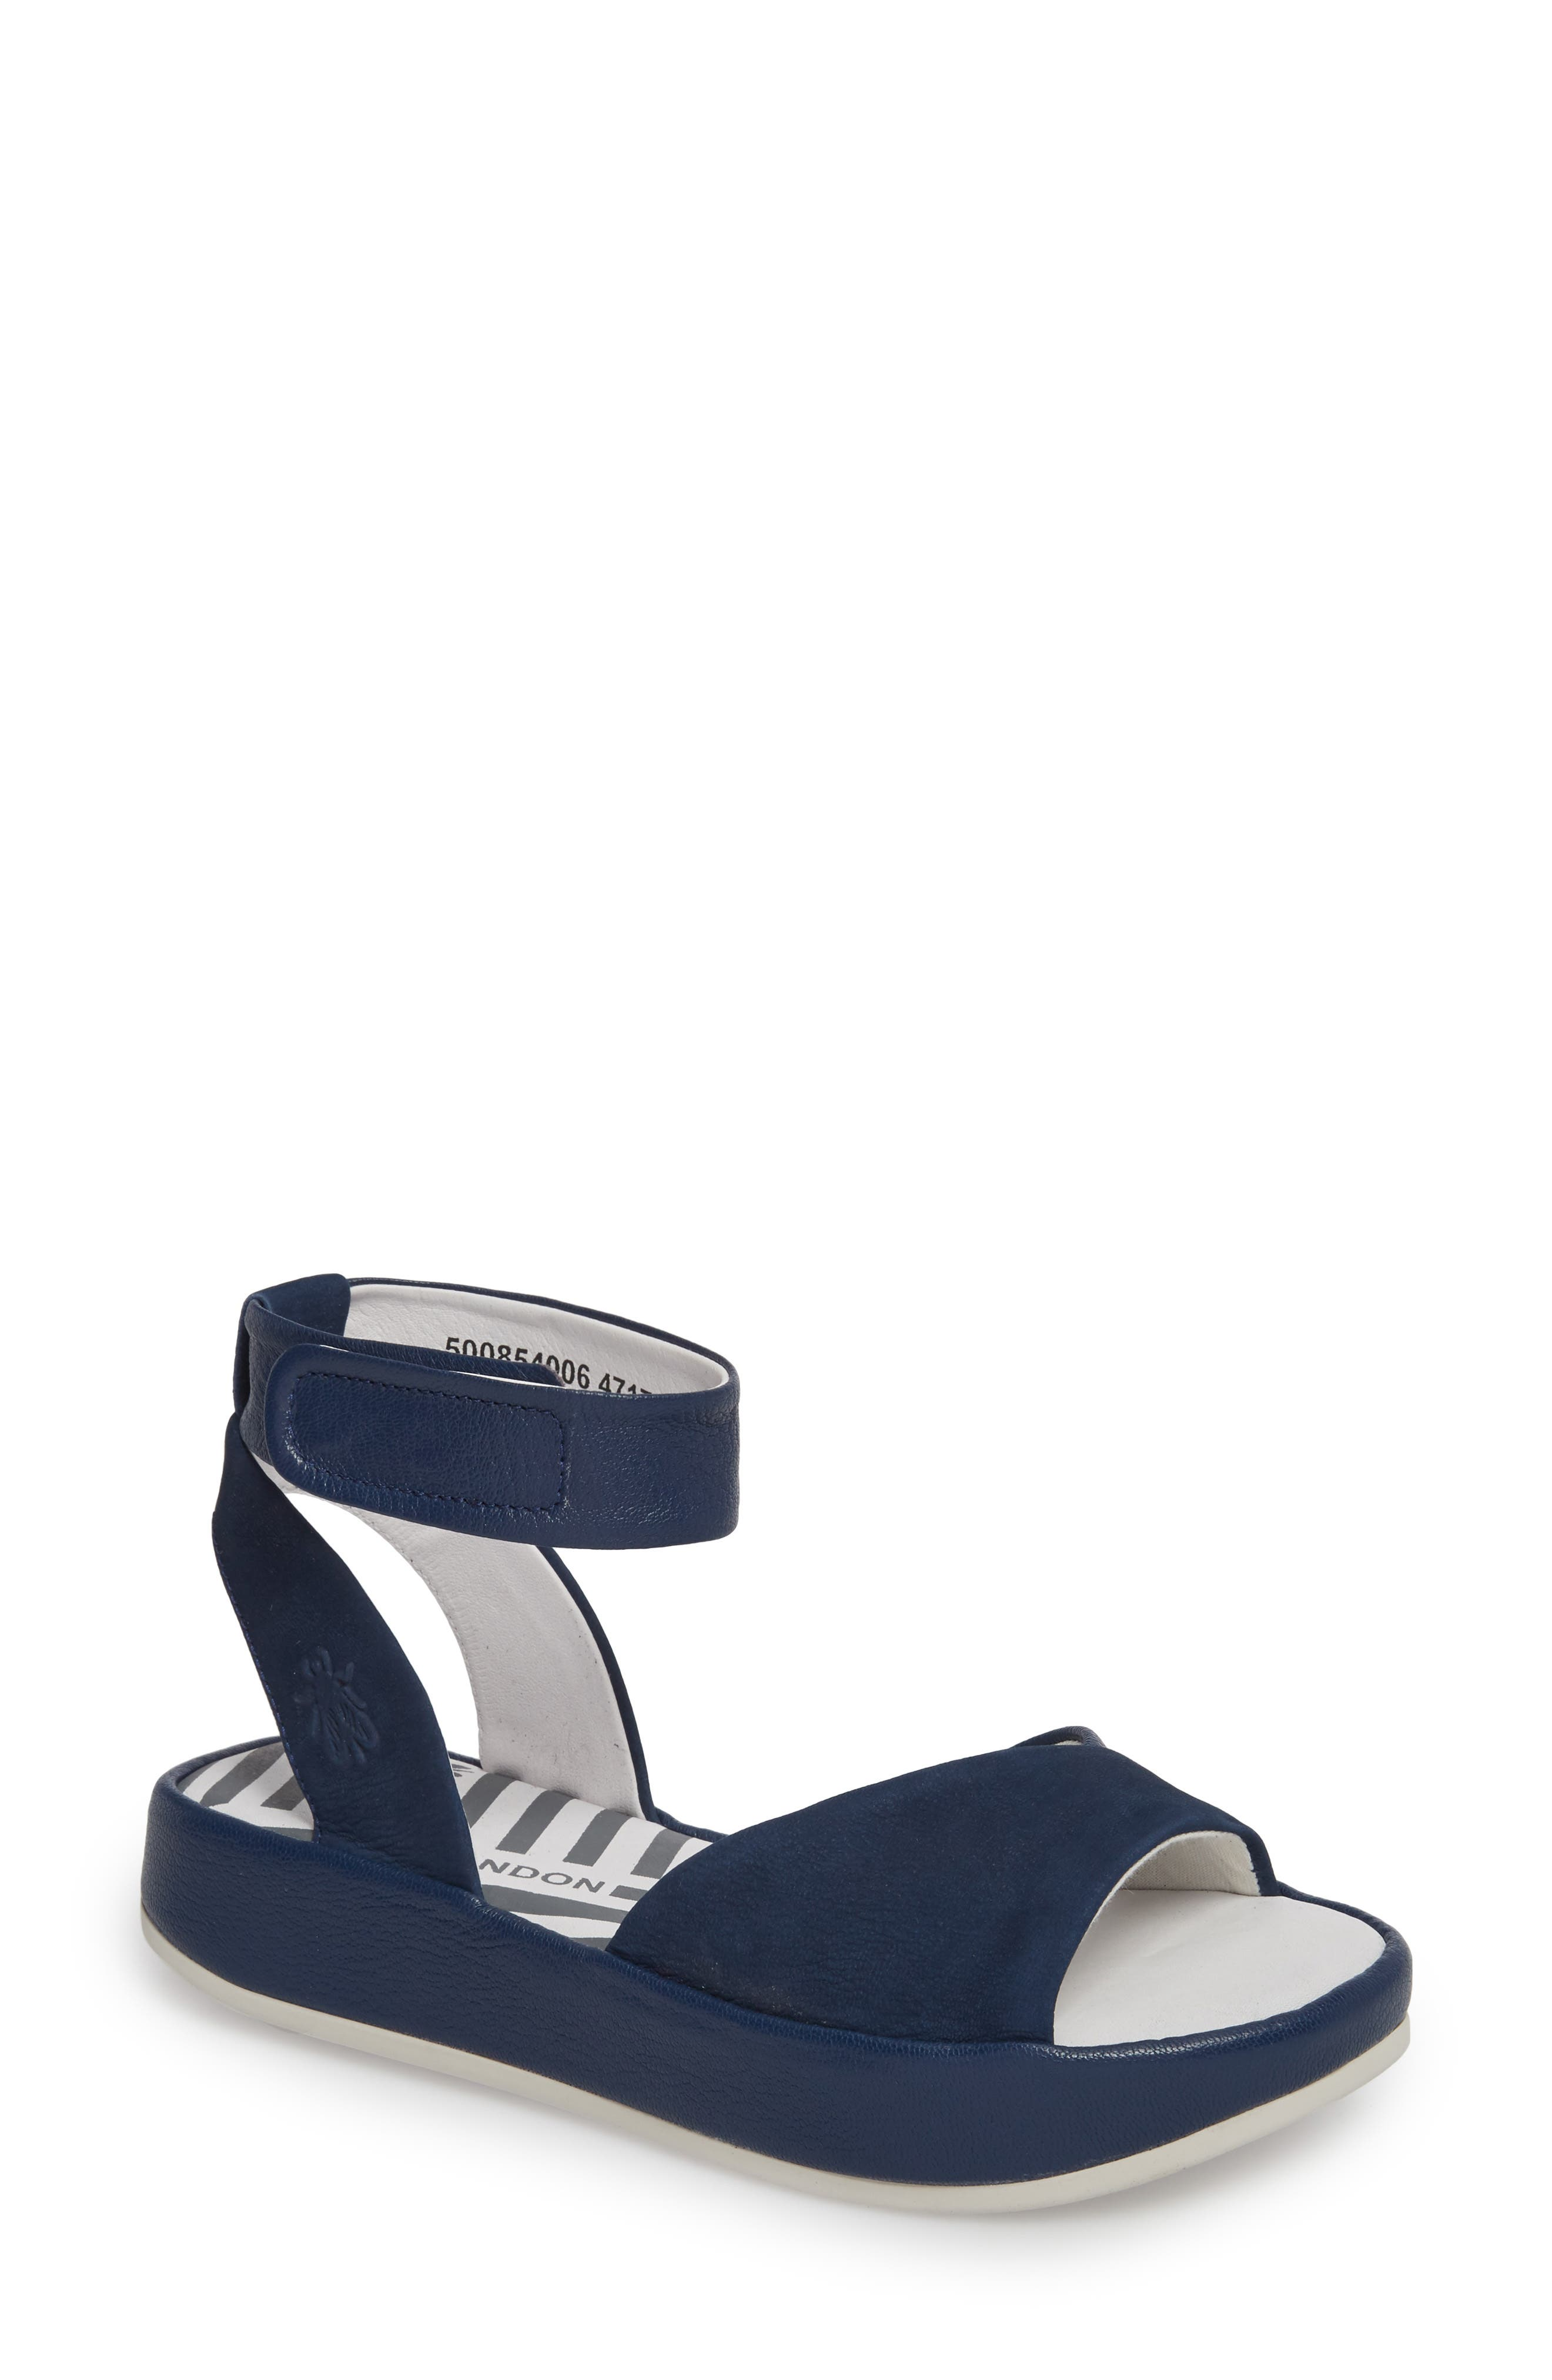 Fly London Bibb Sandal (Women)